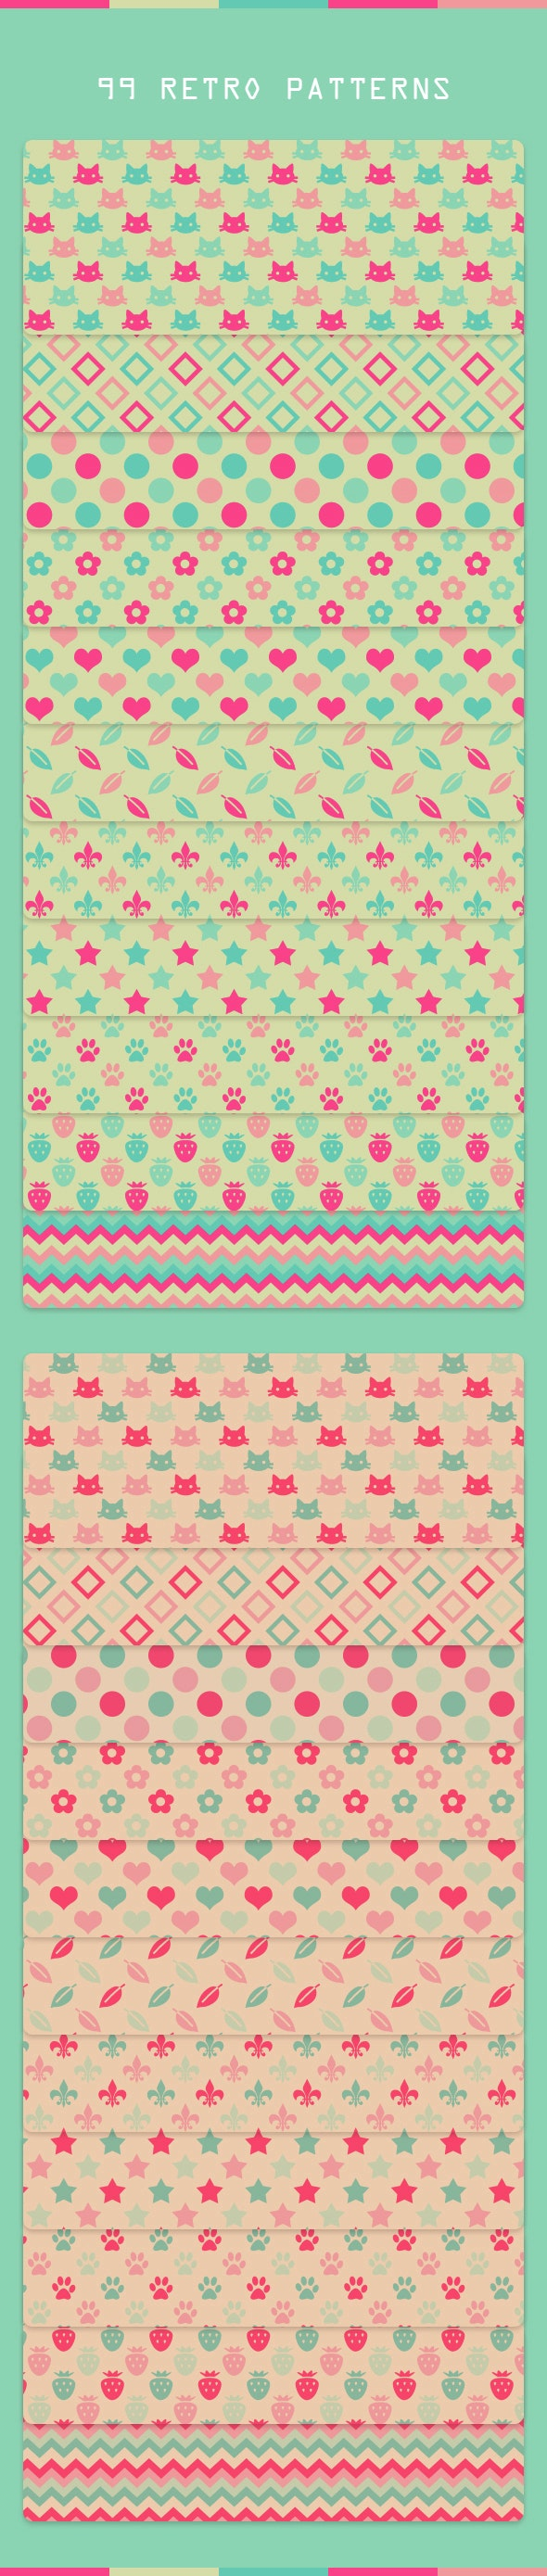 Retro Patterns - Miscellaneous Textures / Fills / Patterns